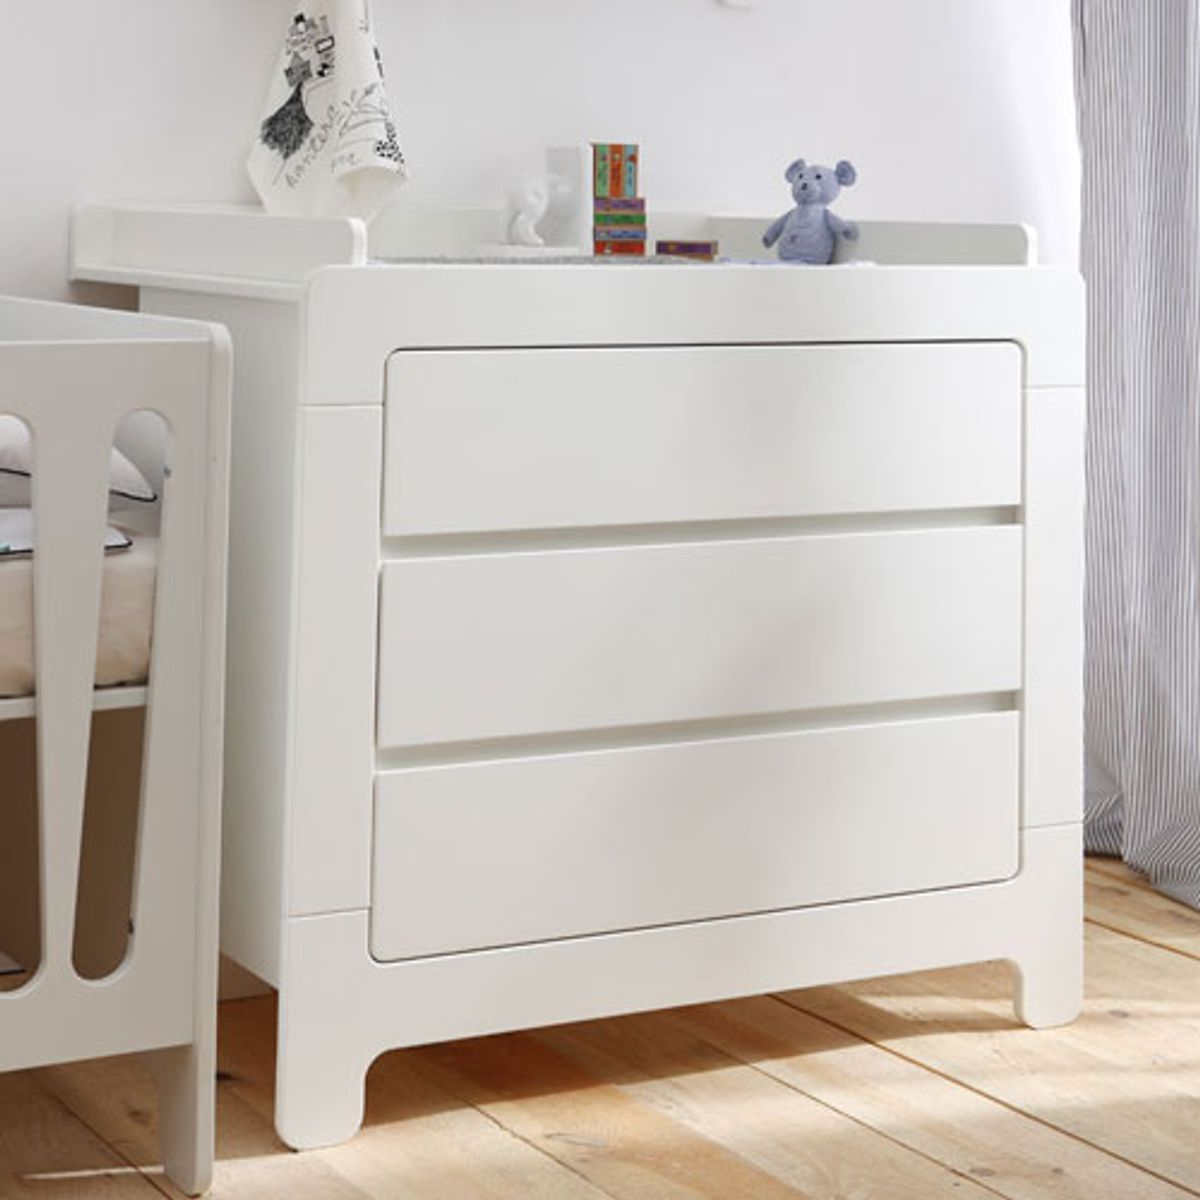 Commode / table à langer en bois blanc 3 tiroirs Moon Pinio